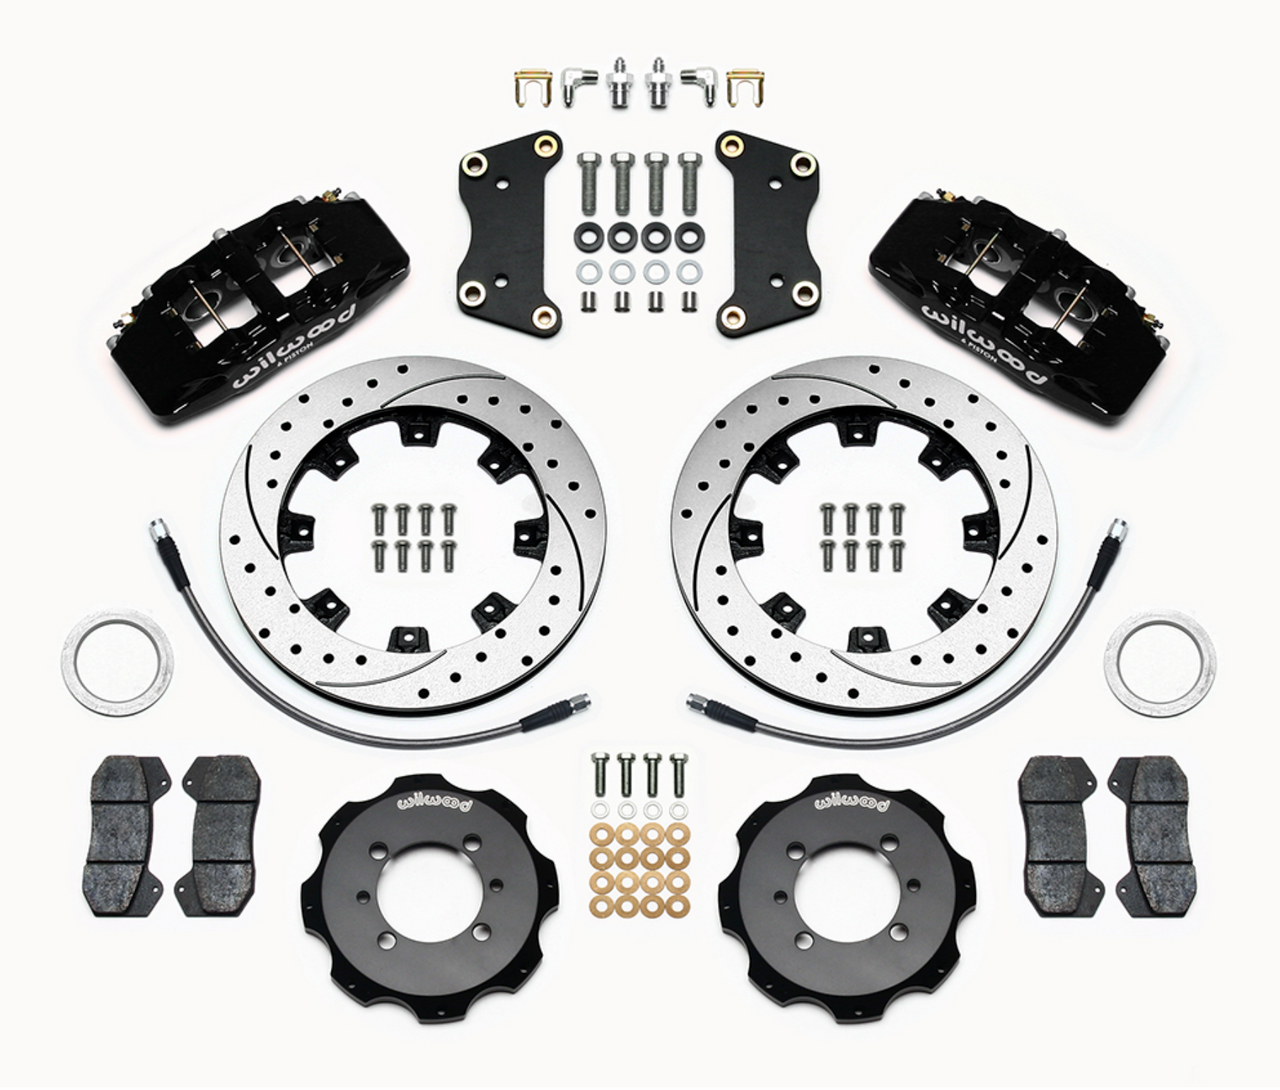 2012-on FIAT 500 Wilwood Front Big Brake Kit - Black Calipers - Auto Ricambi